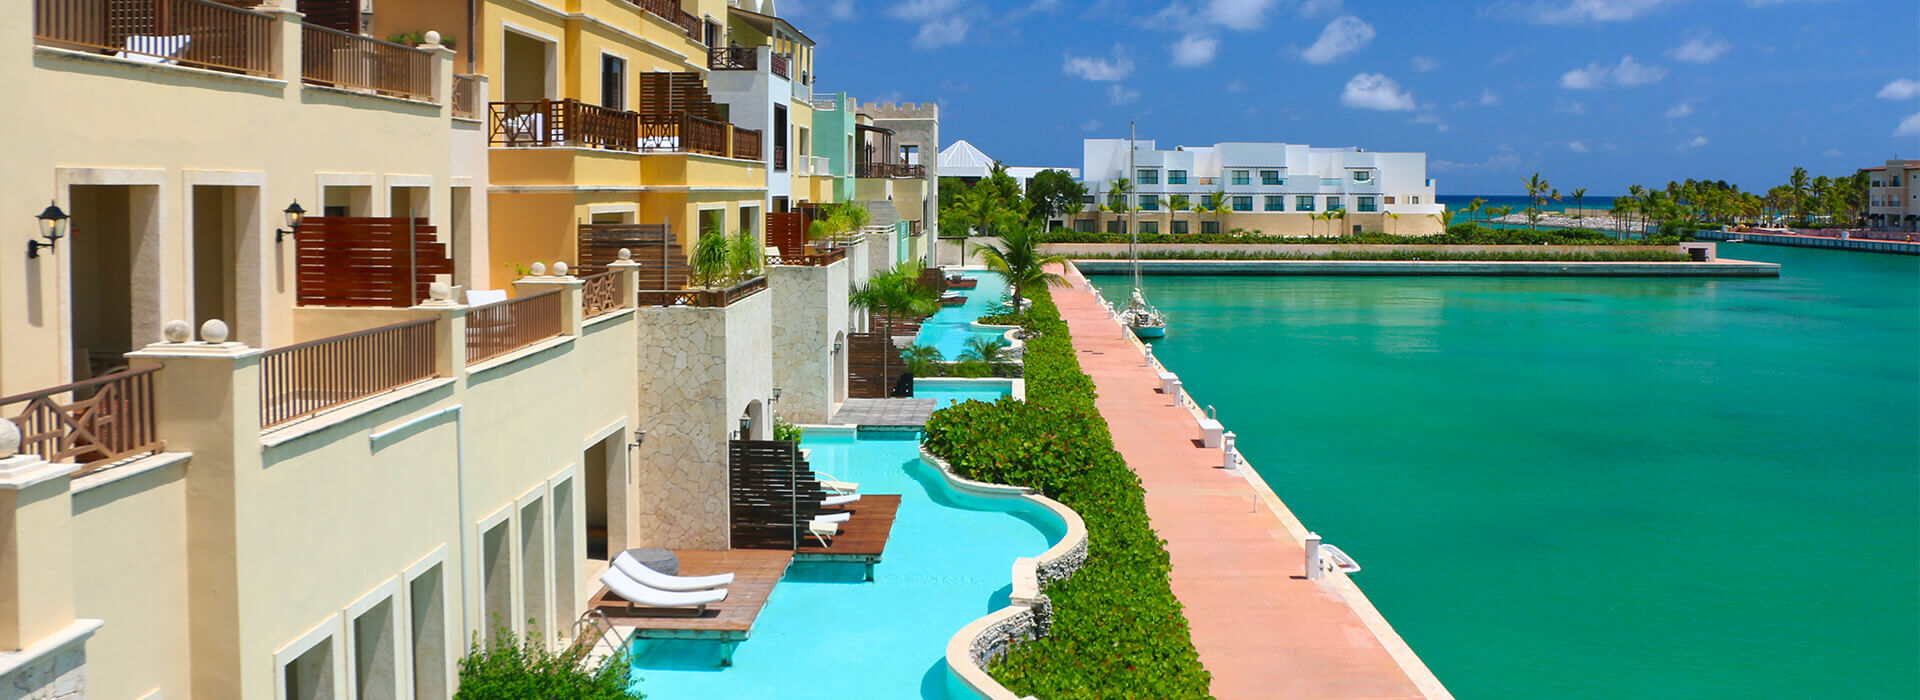 Alsol luxury village resort royal reservations for Luxury hotel reservations